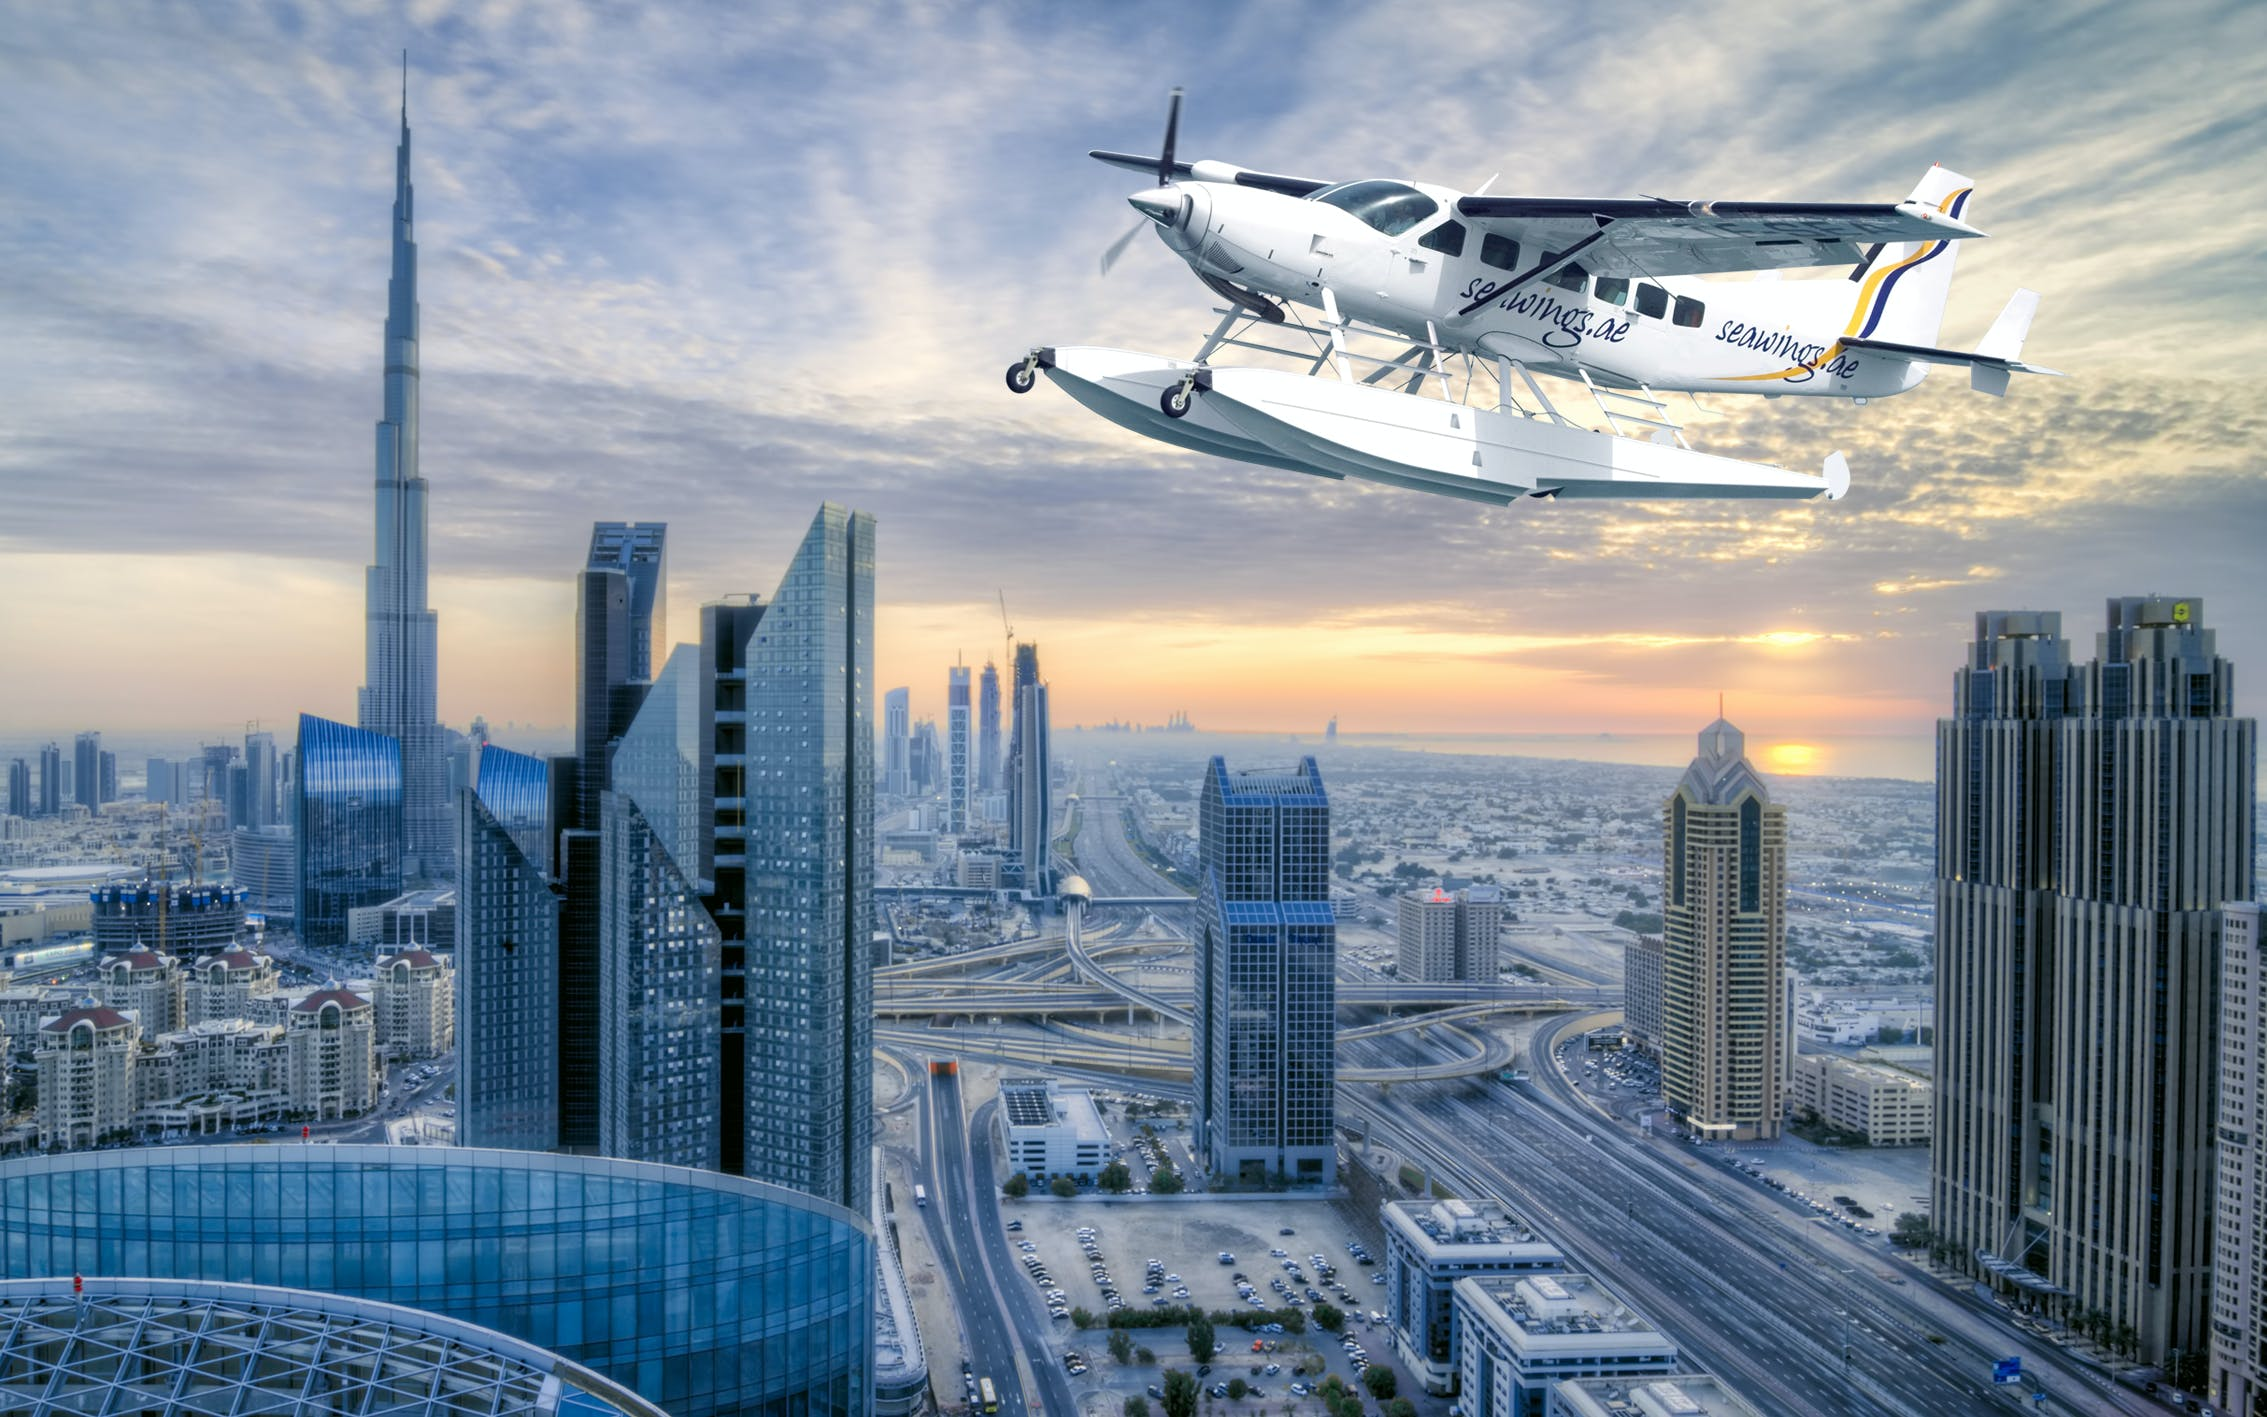 Sharing Seaplane Tour with FREE Burj Khalifa ticket